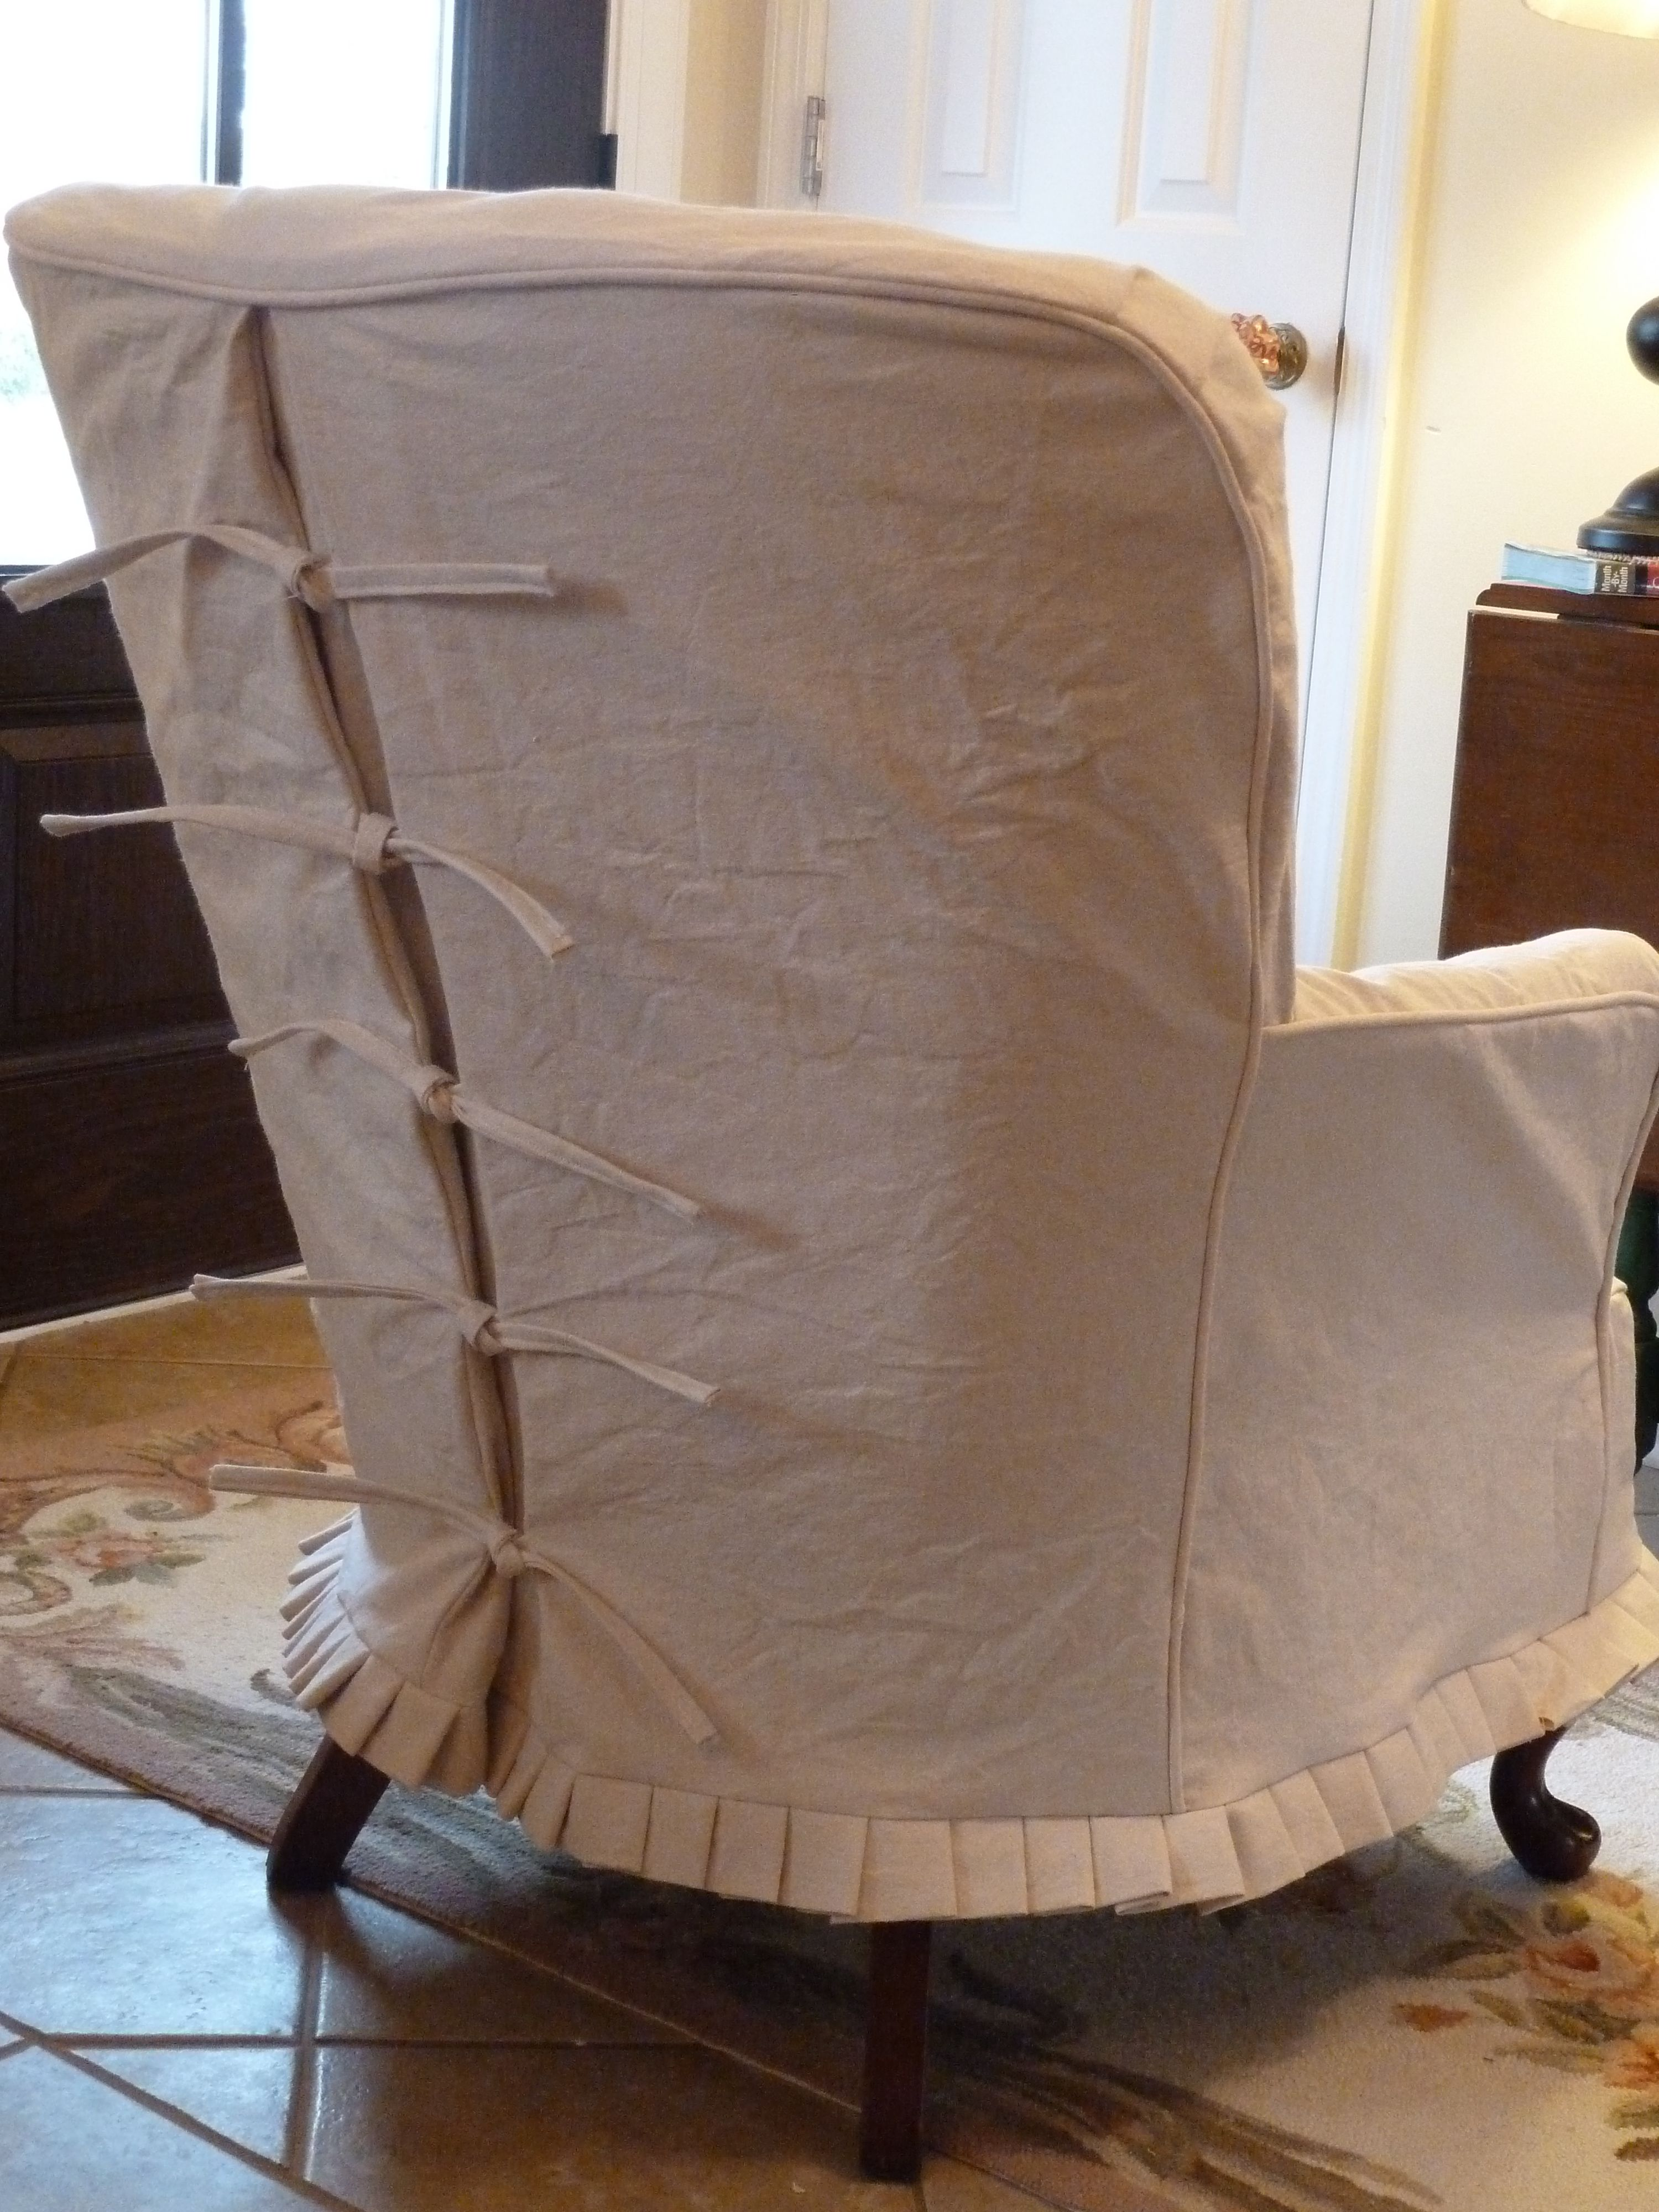 Drop cloth slipcover with back detail.